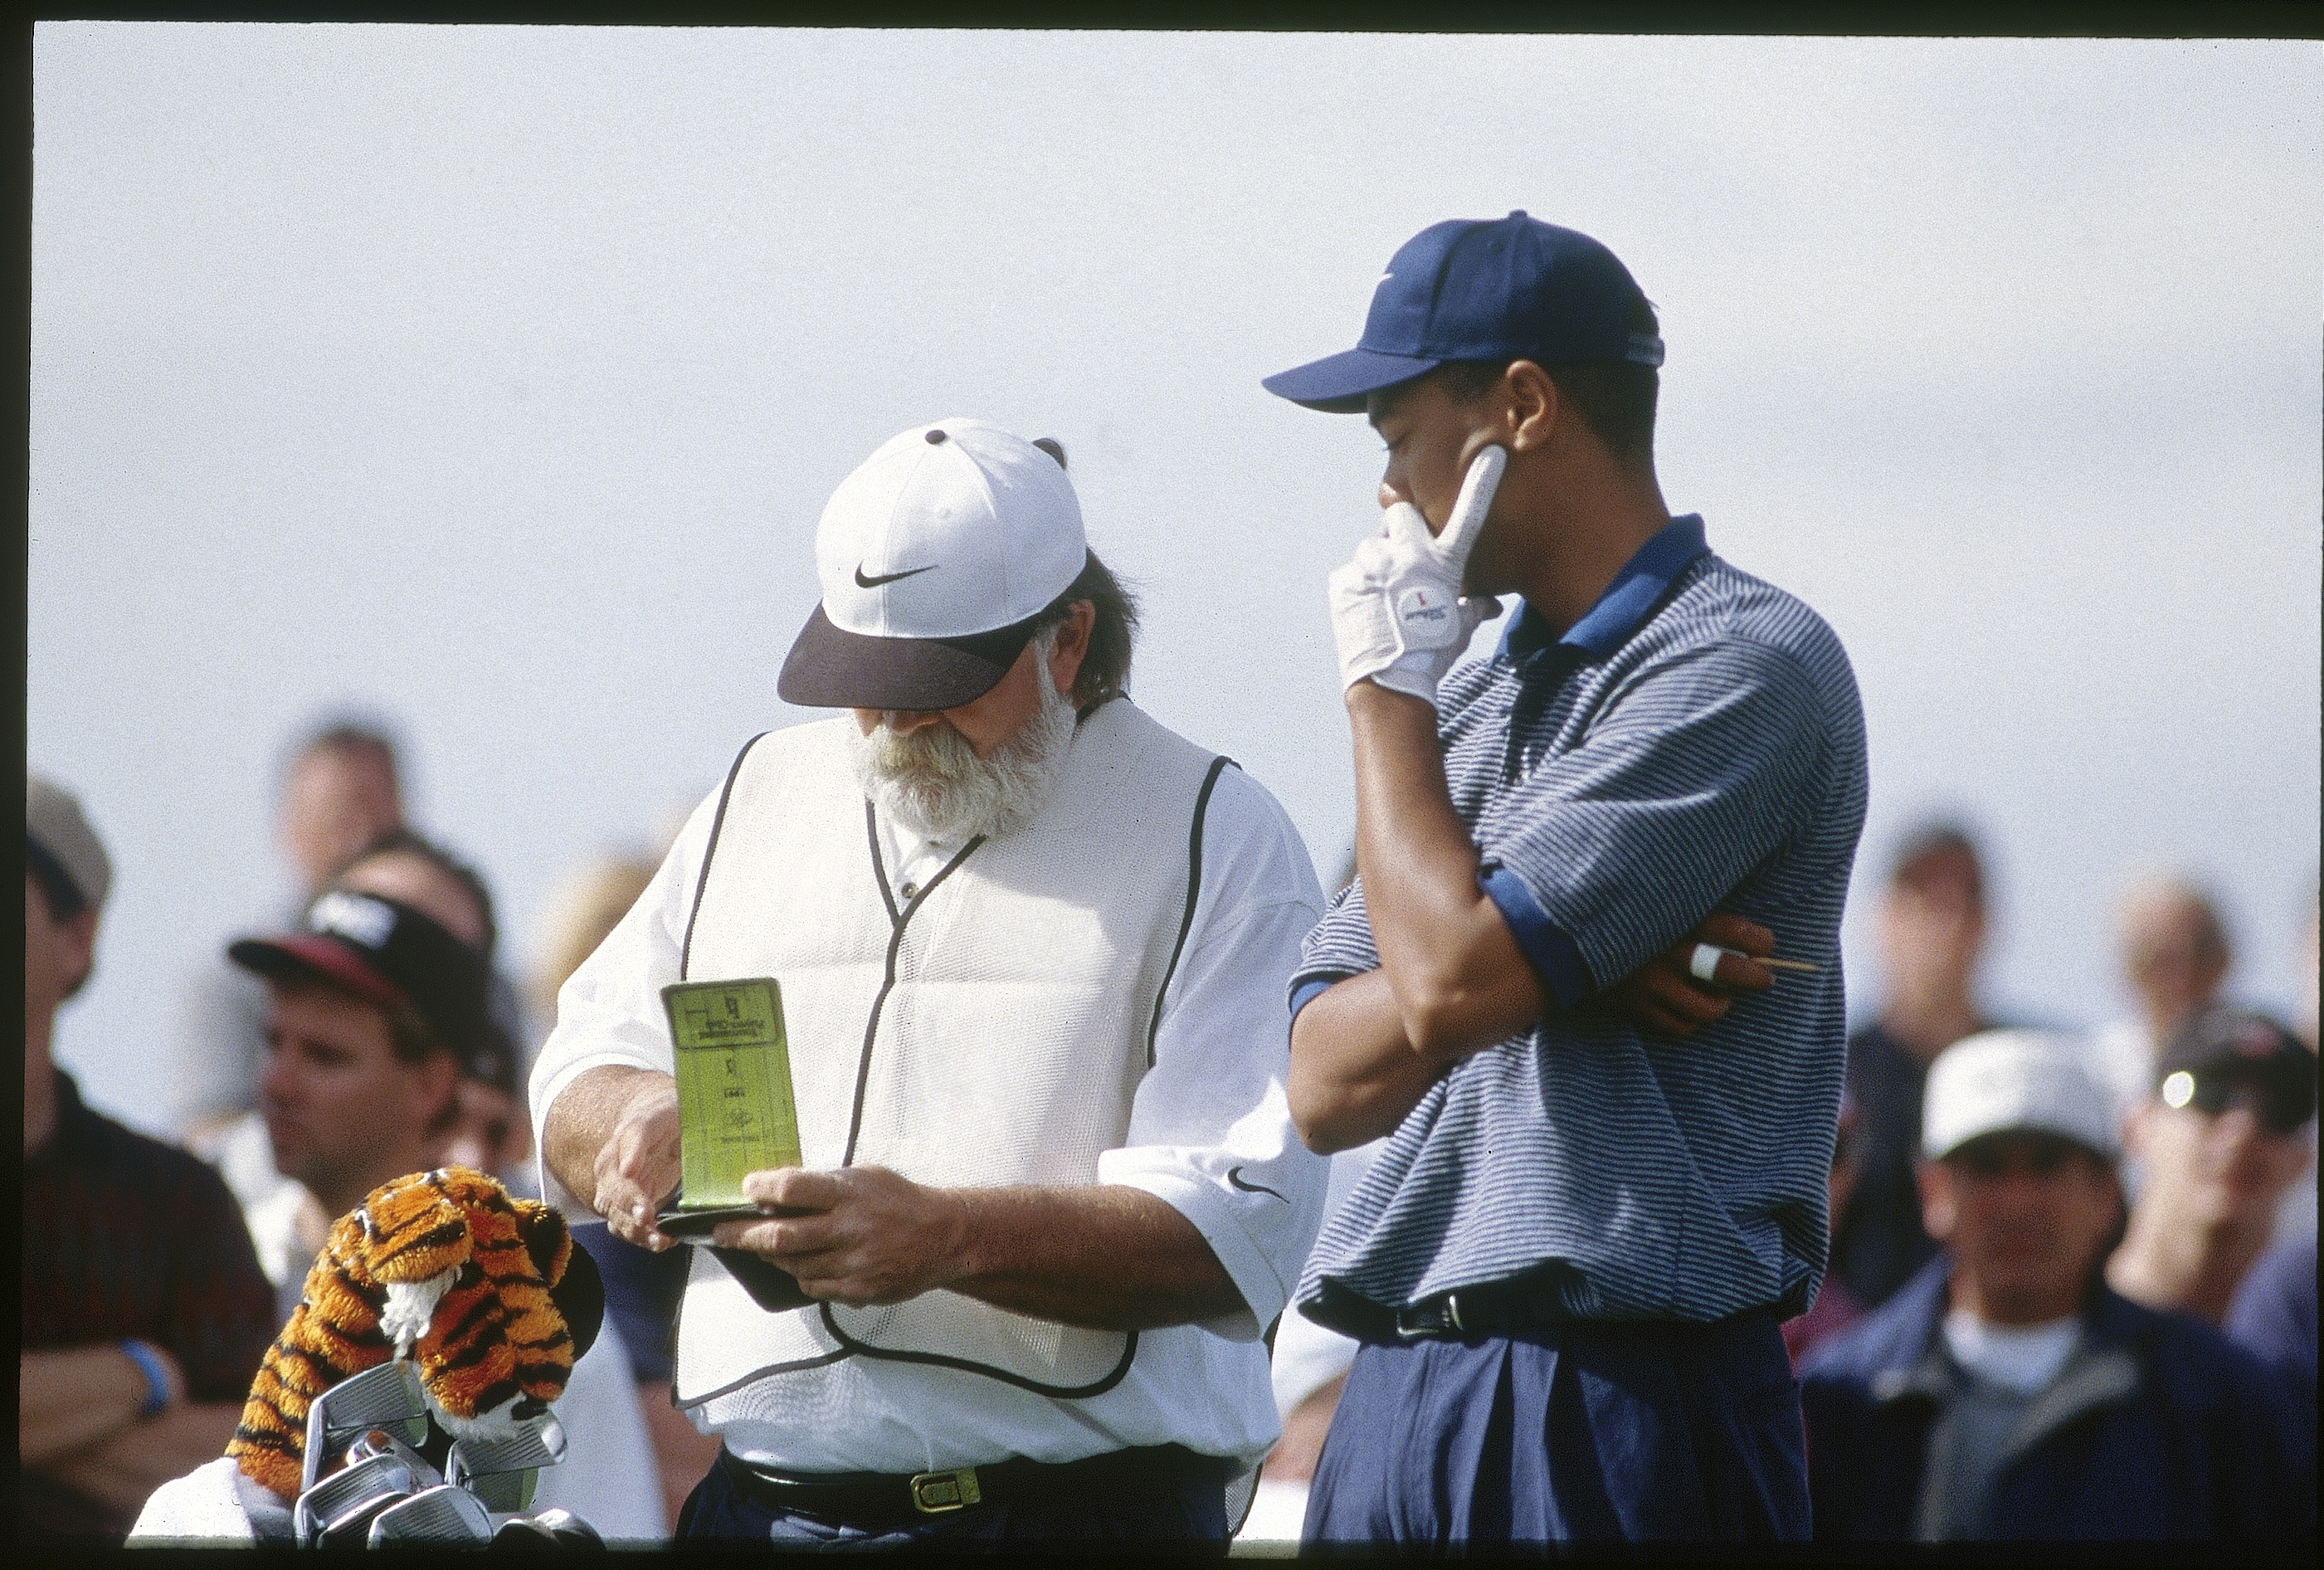 Fluff gives the yardage book one more look. He's a long-time Deadhead, which explains the Jerry Garcia beard